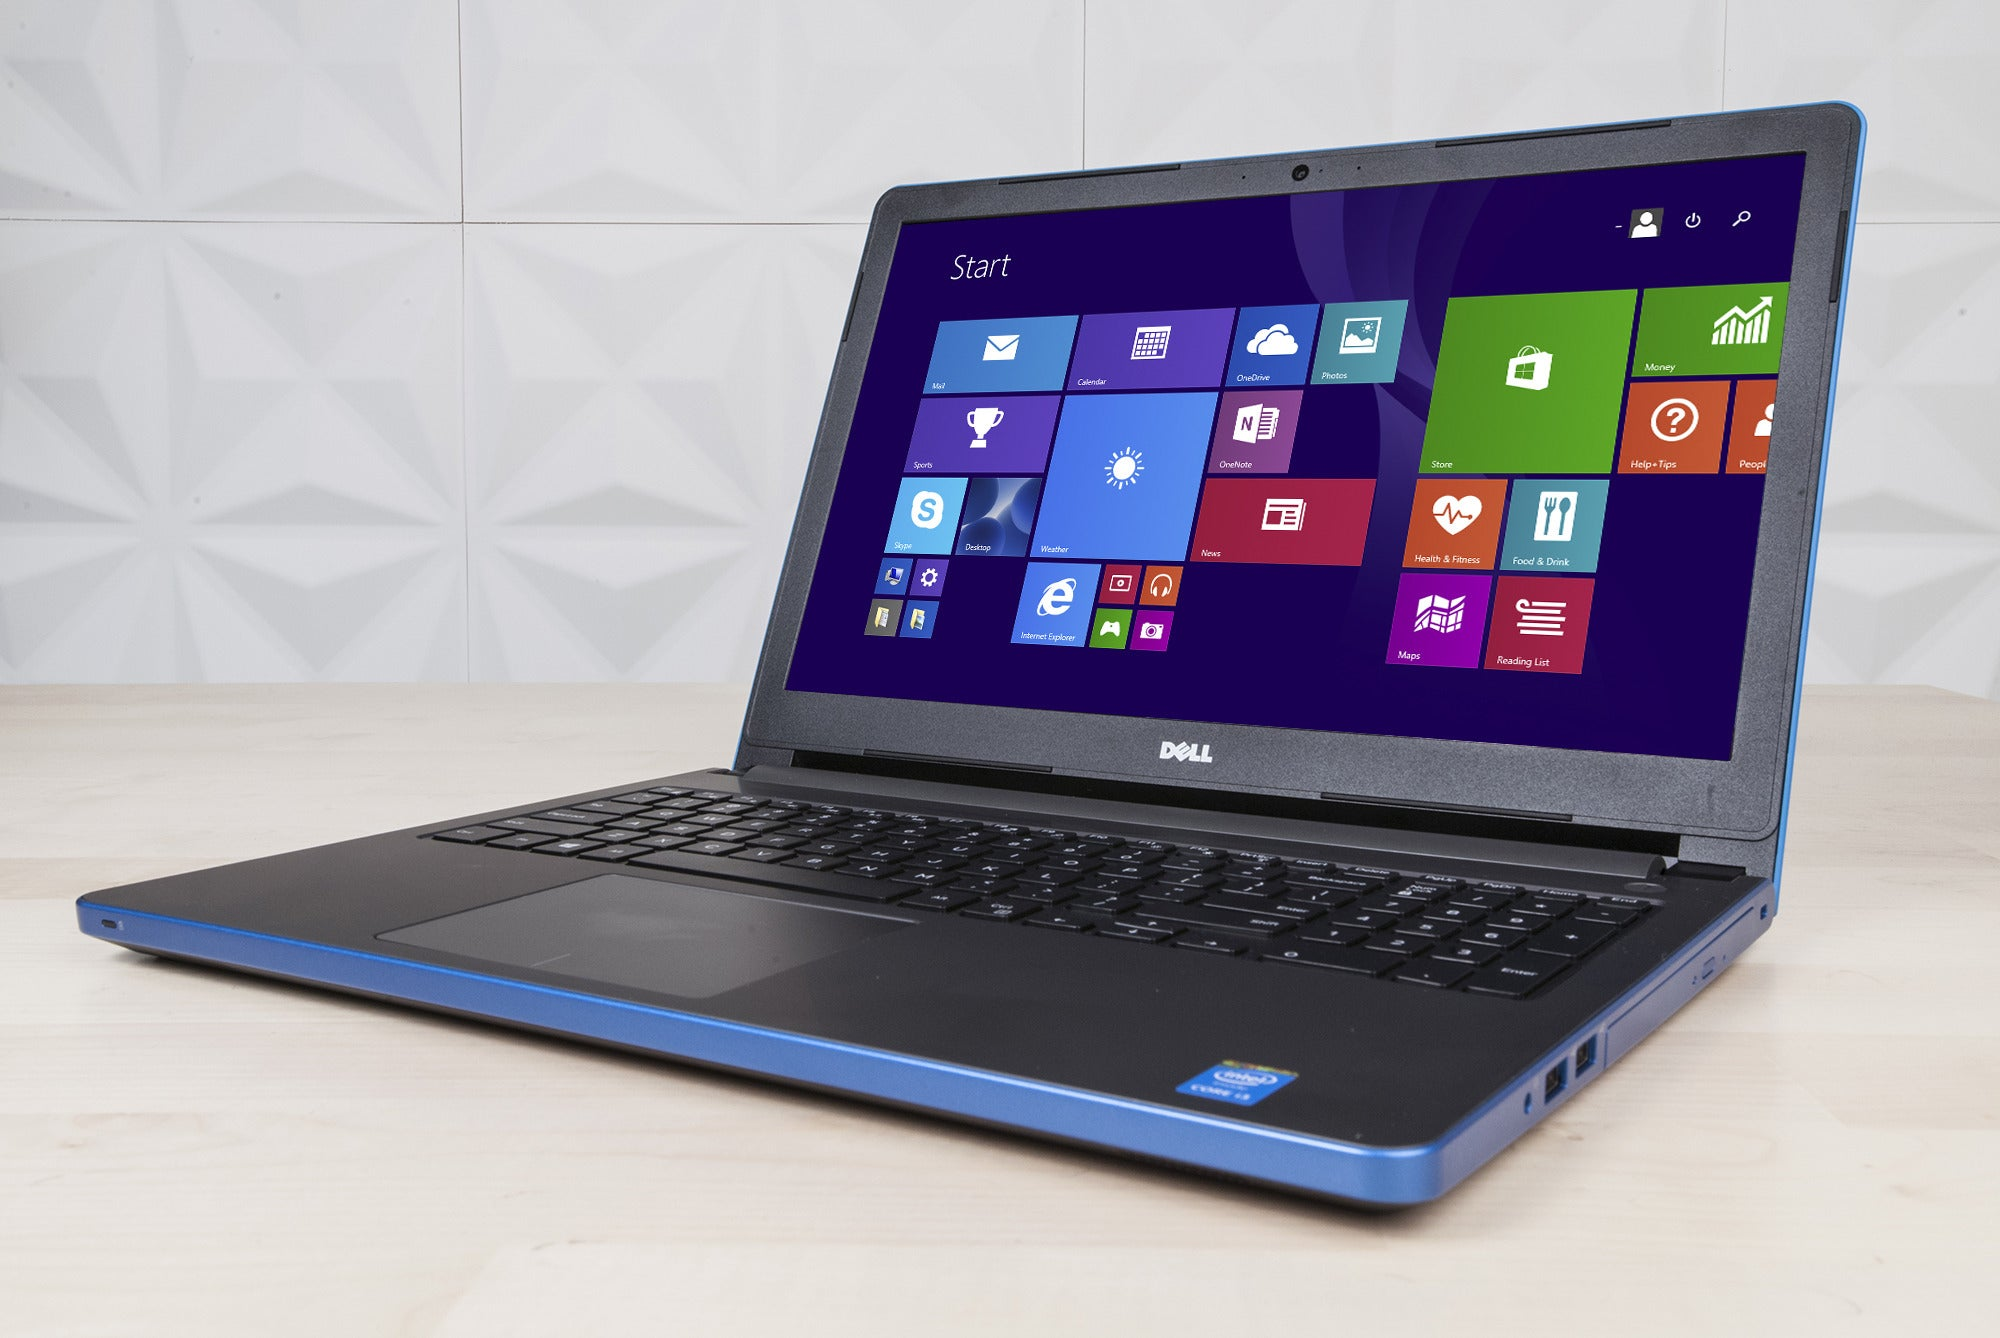 dell inspiron 15 5000 series review one of the most attractive rh pcworld com Dell PC User Manual Dell Latitude User Manual